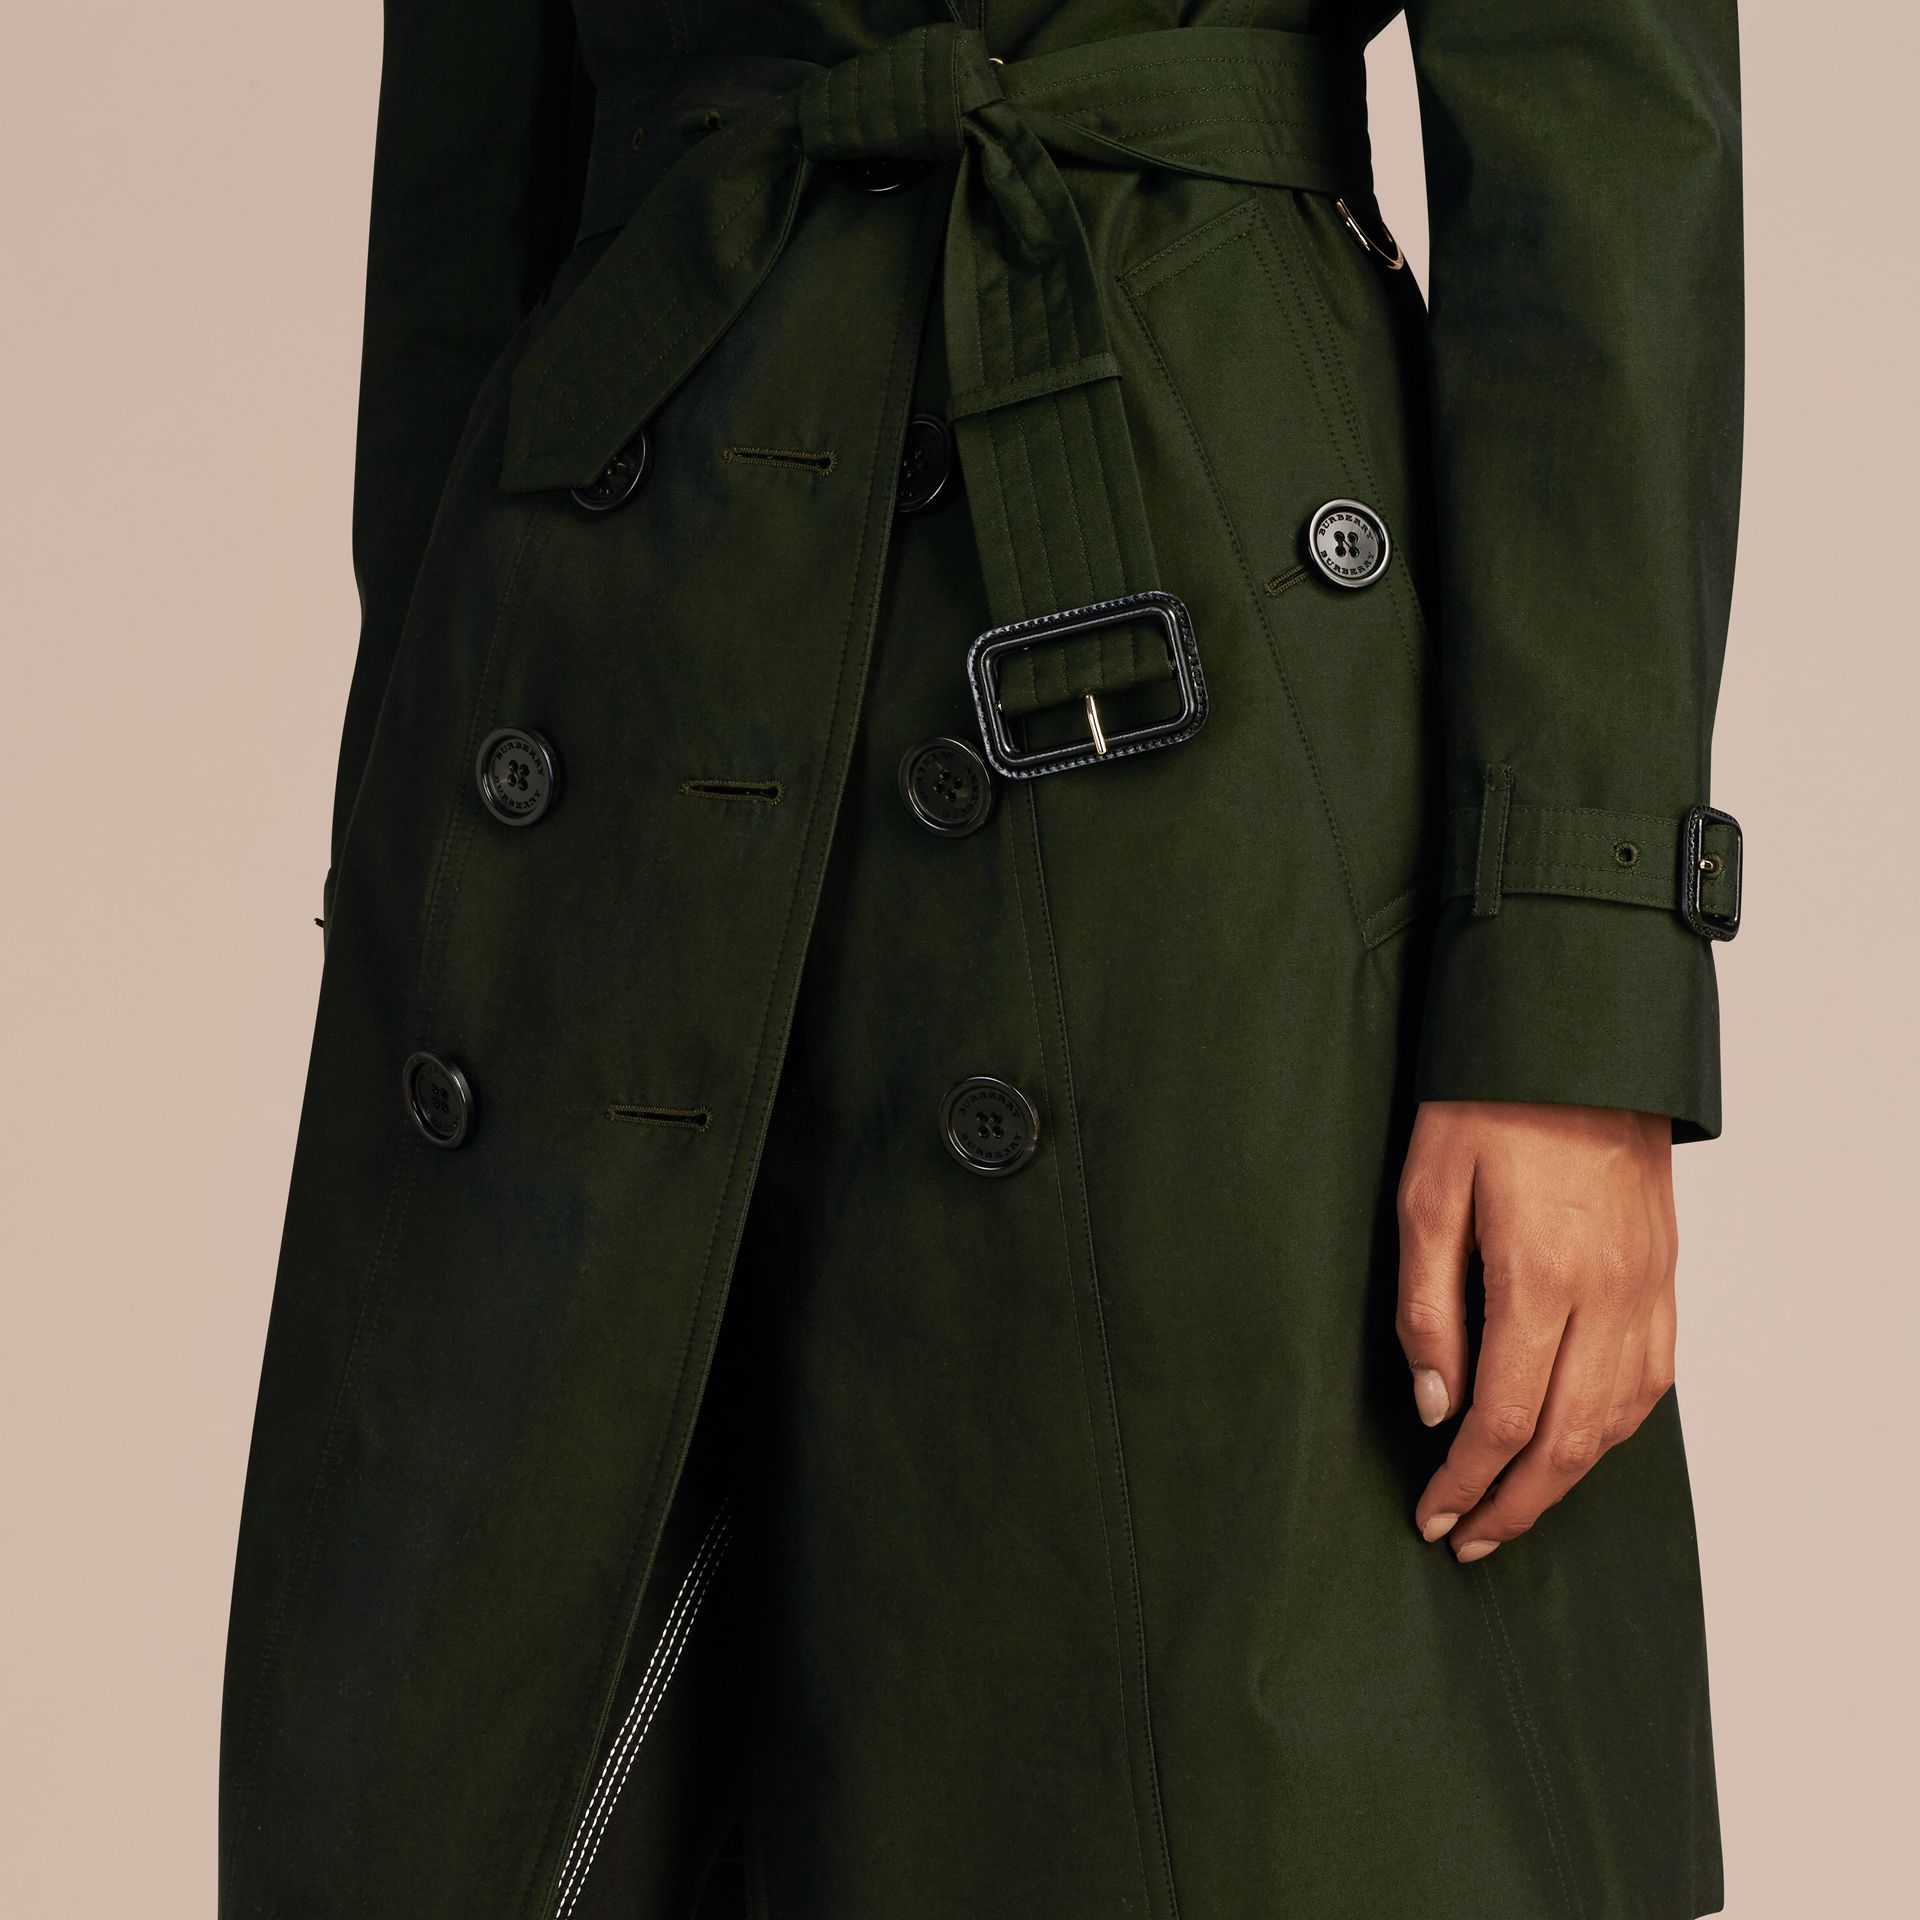 Dark cedar green Cotton Gabardine Trench Coat with Detachable Fur Trim Dark Cedar Green - gallery image 5